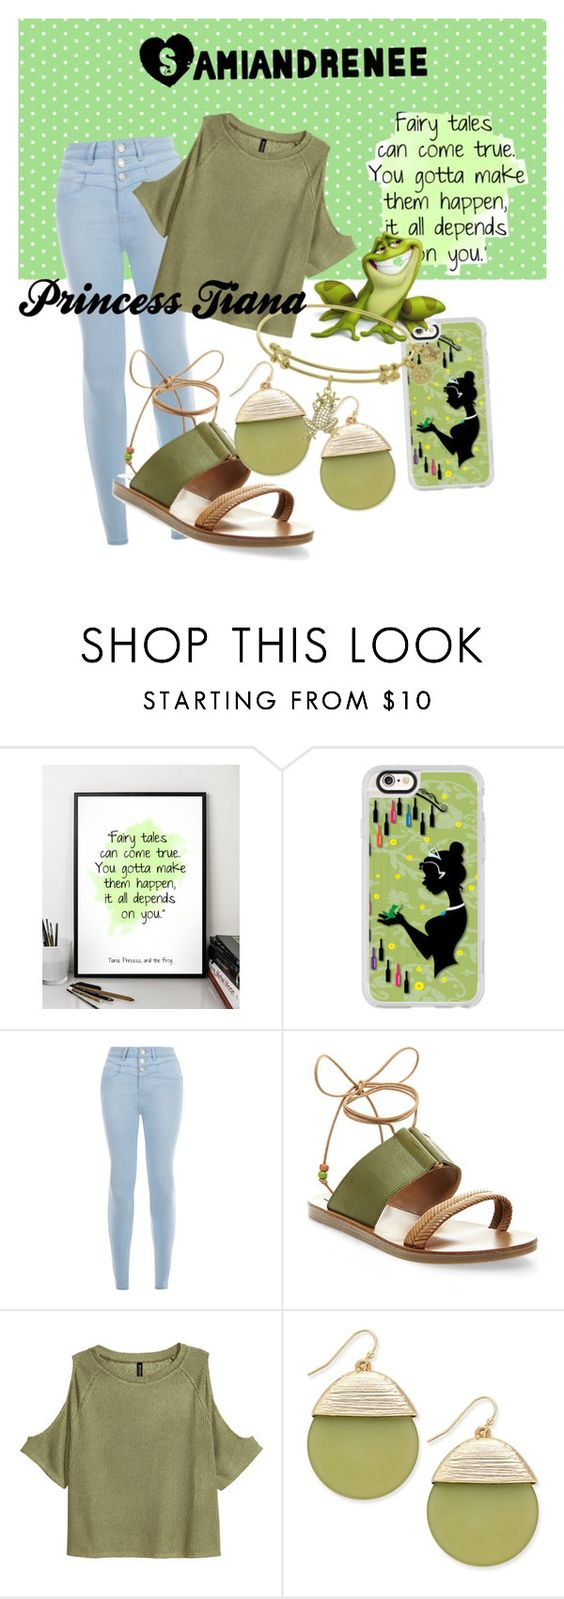 """Disney Princess Tiana Inspiration"" by samiandrenee on Polyvore featuring Disney, Casetify, New Look, Steve Madden and INC International Concepts"